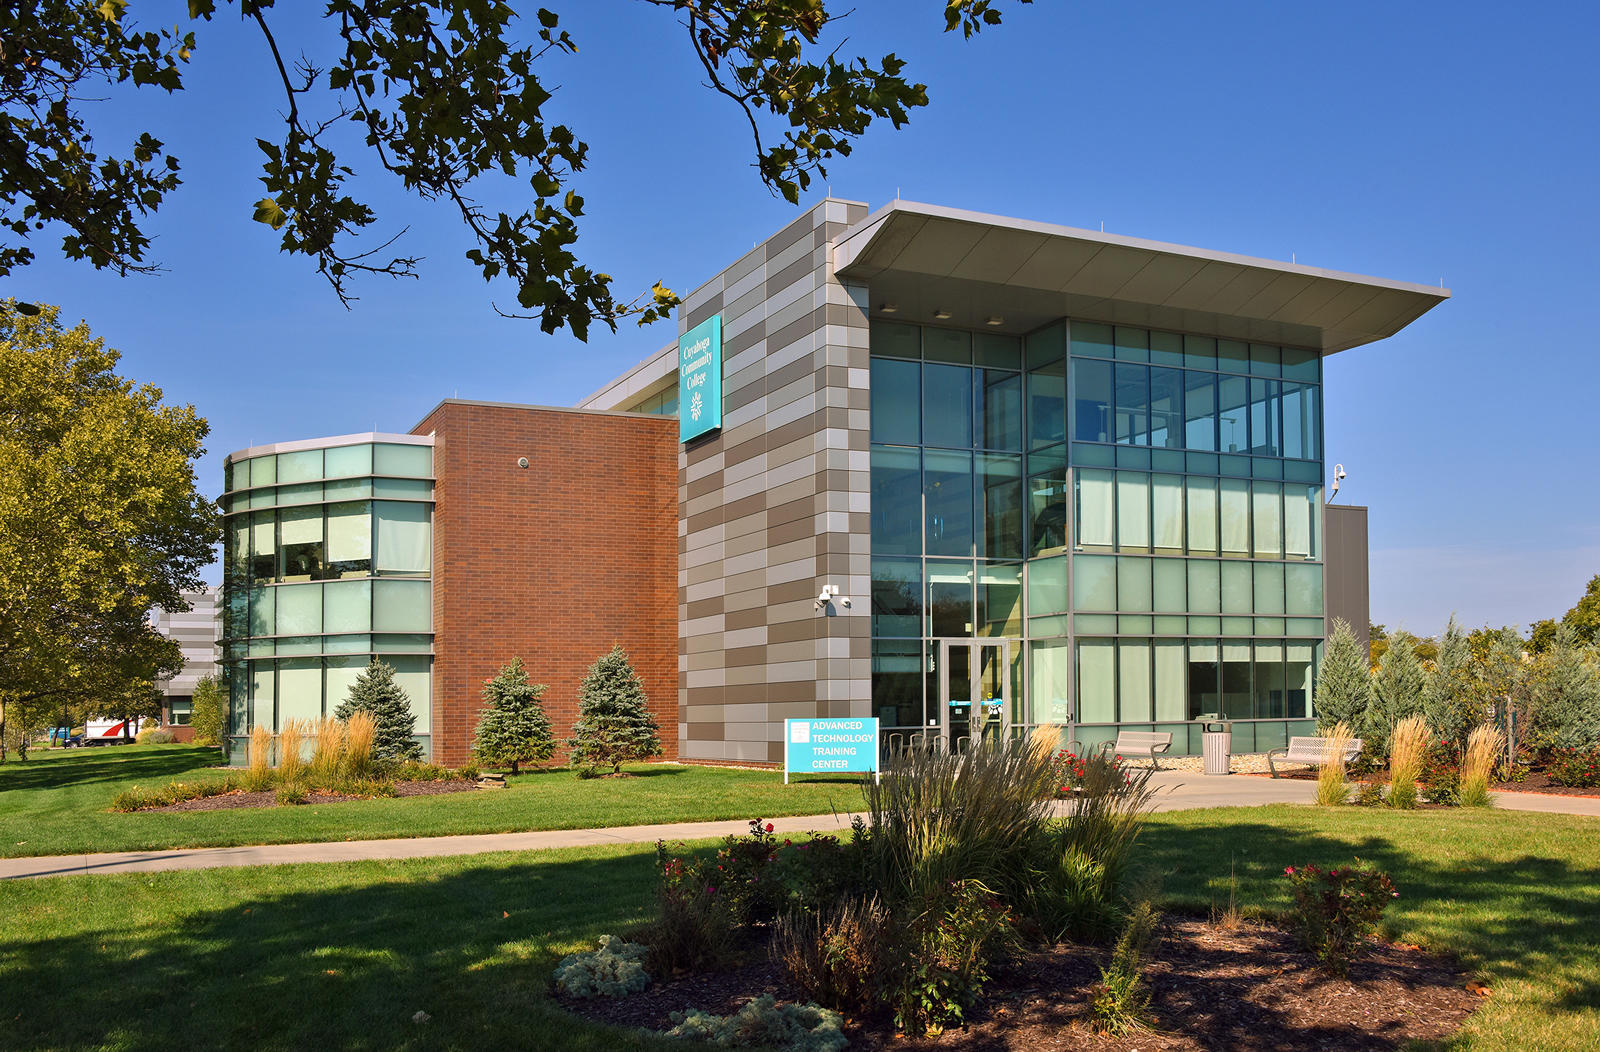 Cuyahoga Community College Emerging Technology and Energy Center